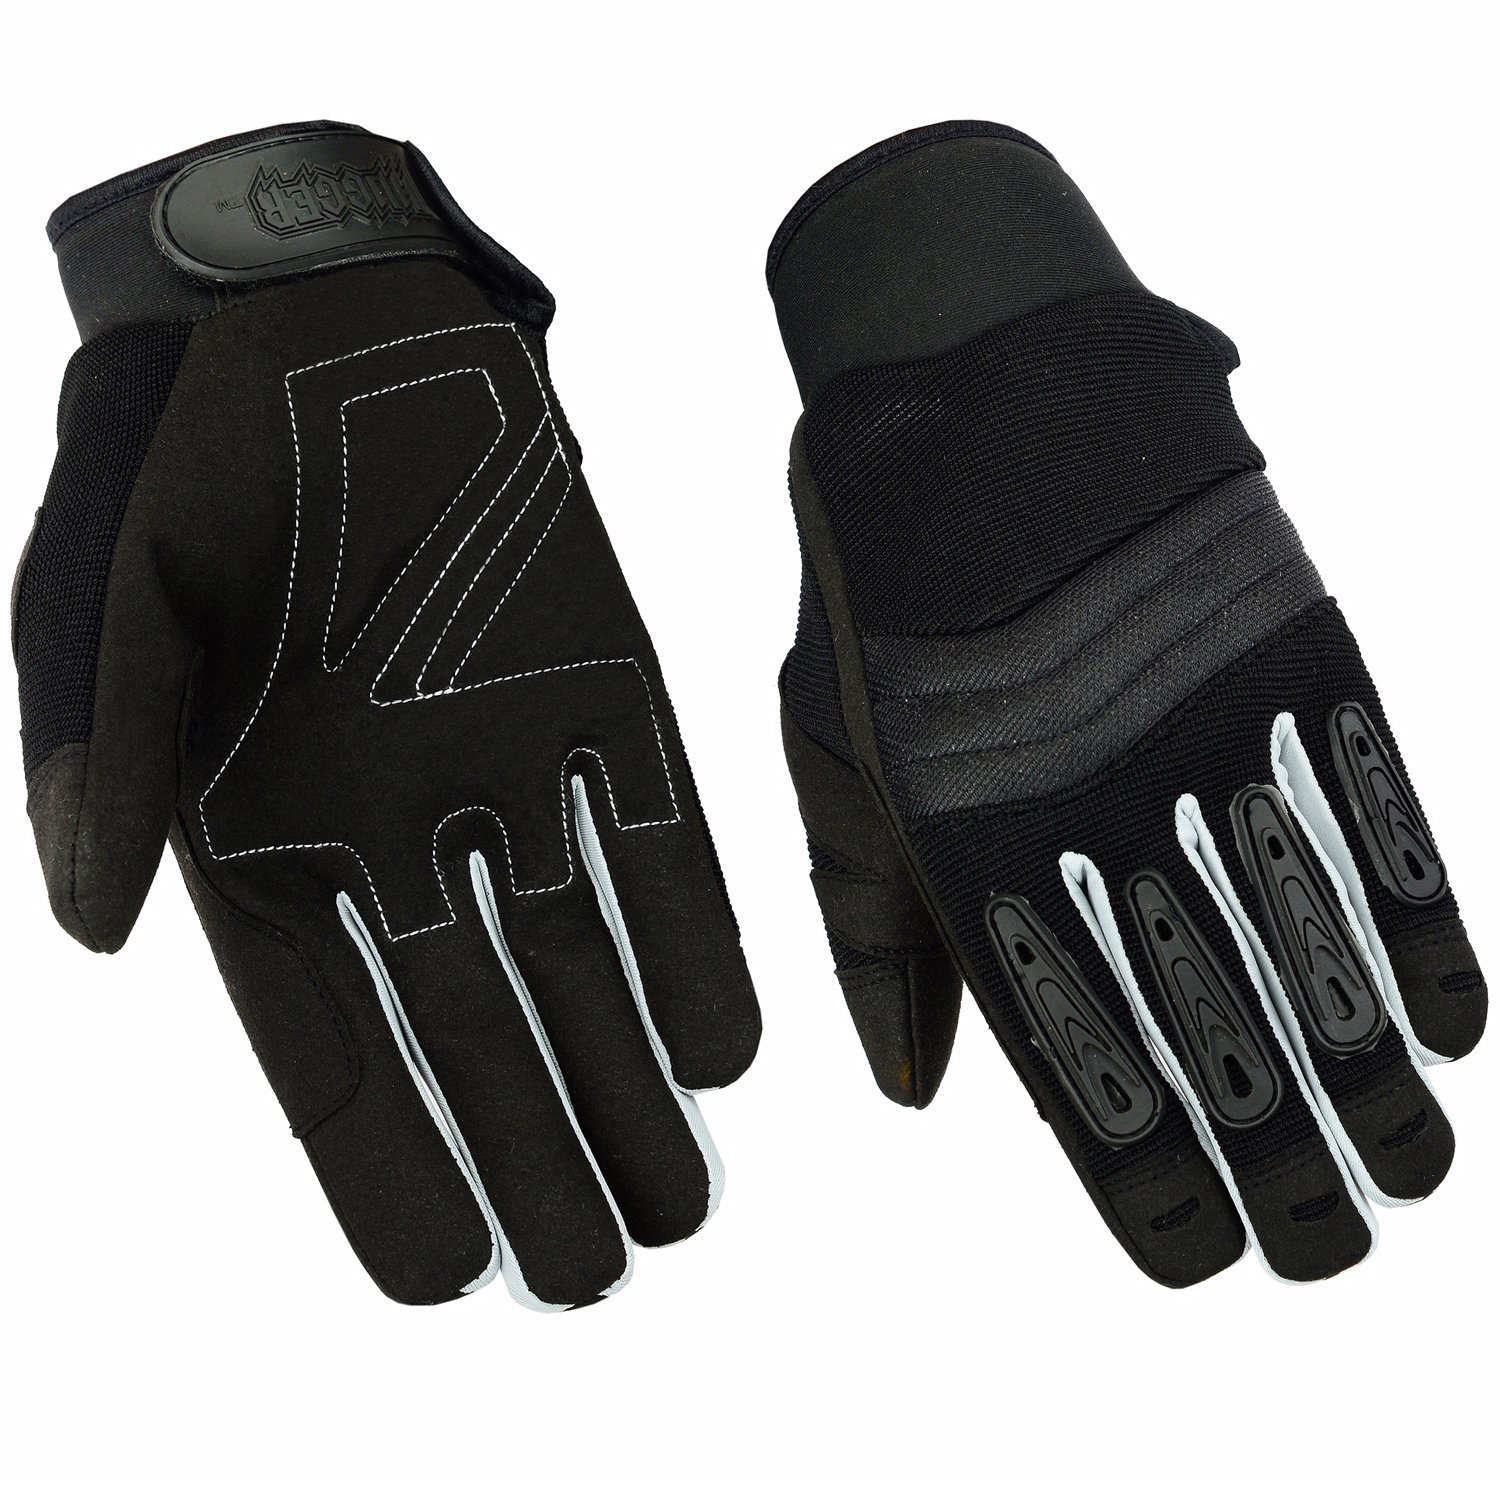 Mens Air Cooled No Sweat Knit Extreme Comfort Riding Glove (X-Large, Black/Grey)